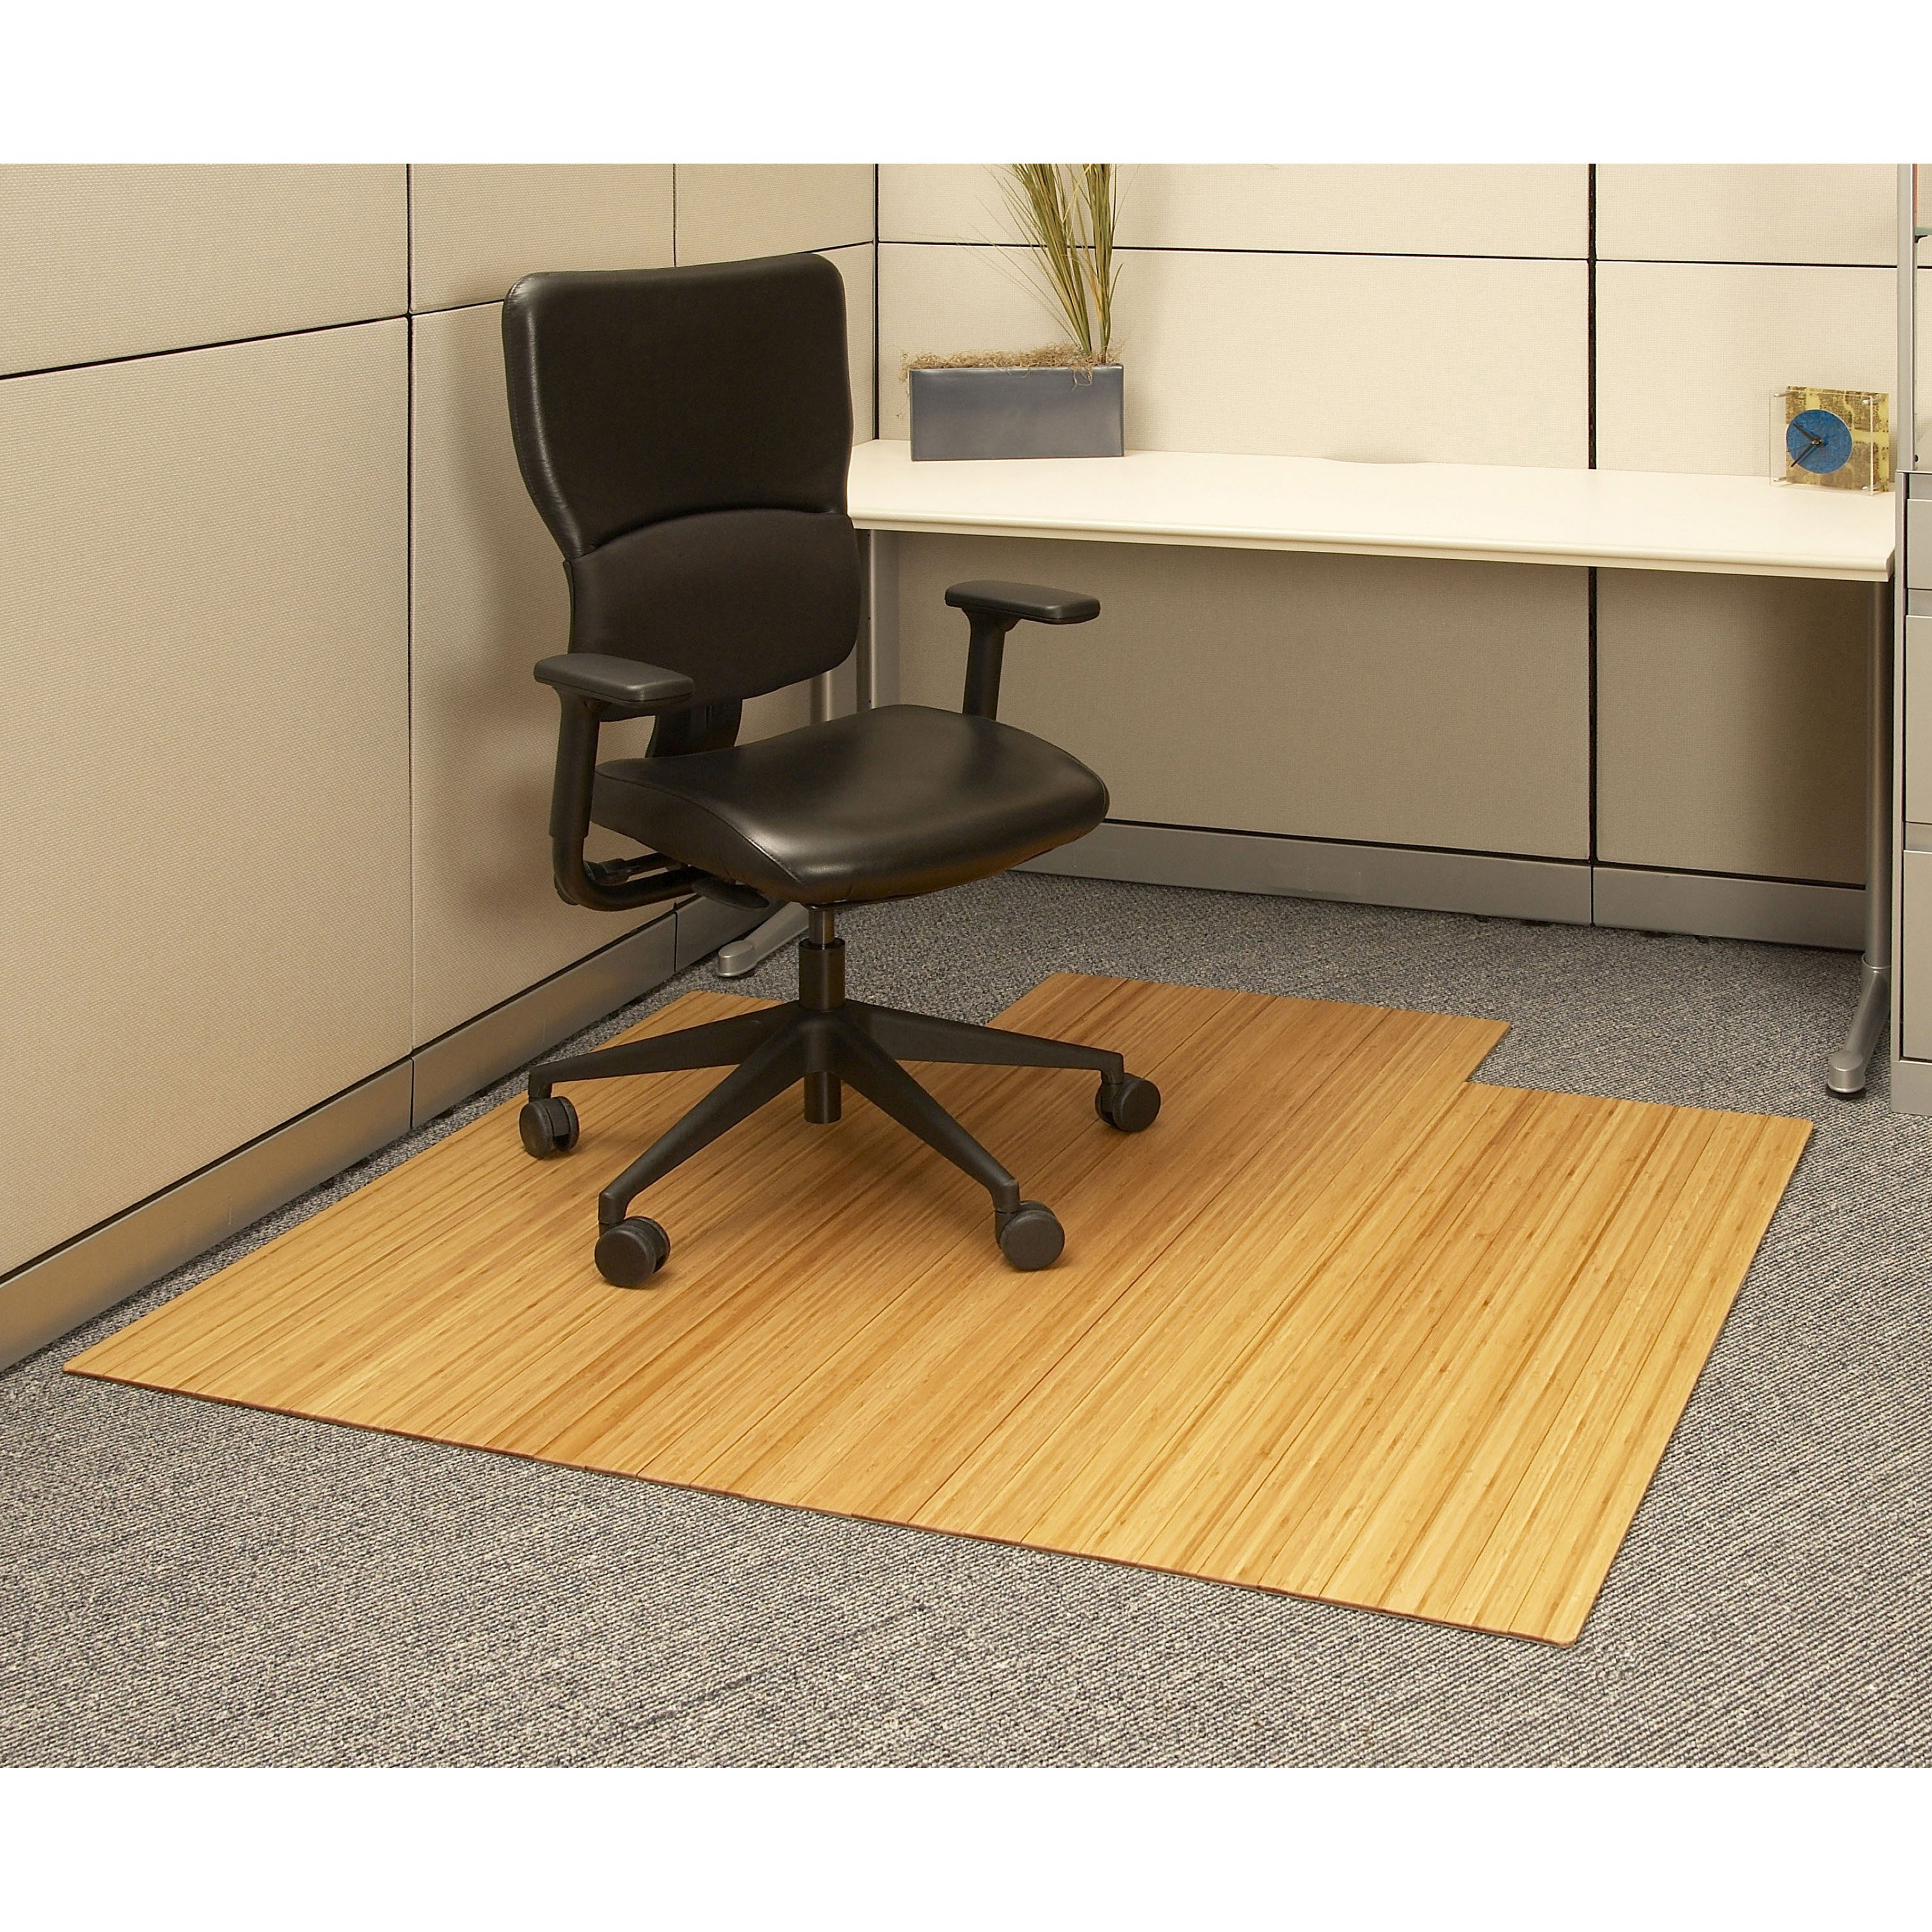 Best ideas about Office Chair Mats . Save or Pin Natural 55 x 57 Bamboo Roll Up fice Chair Mat fice Now.